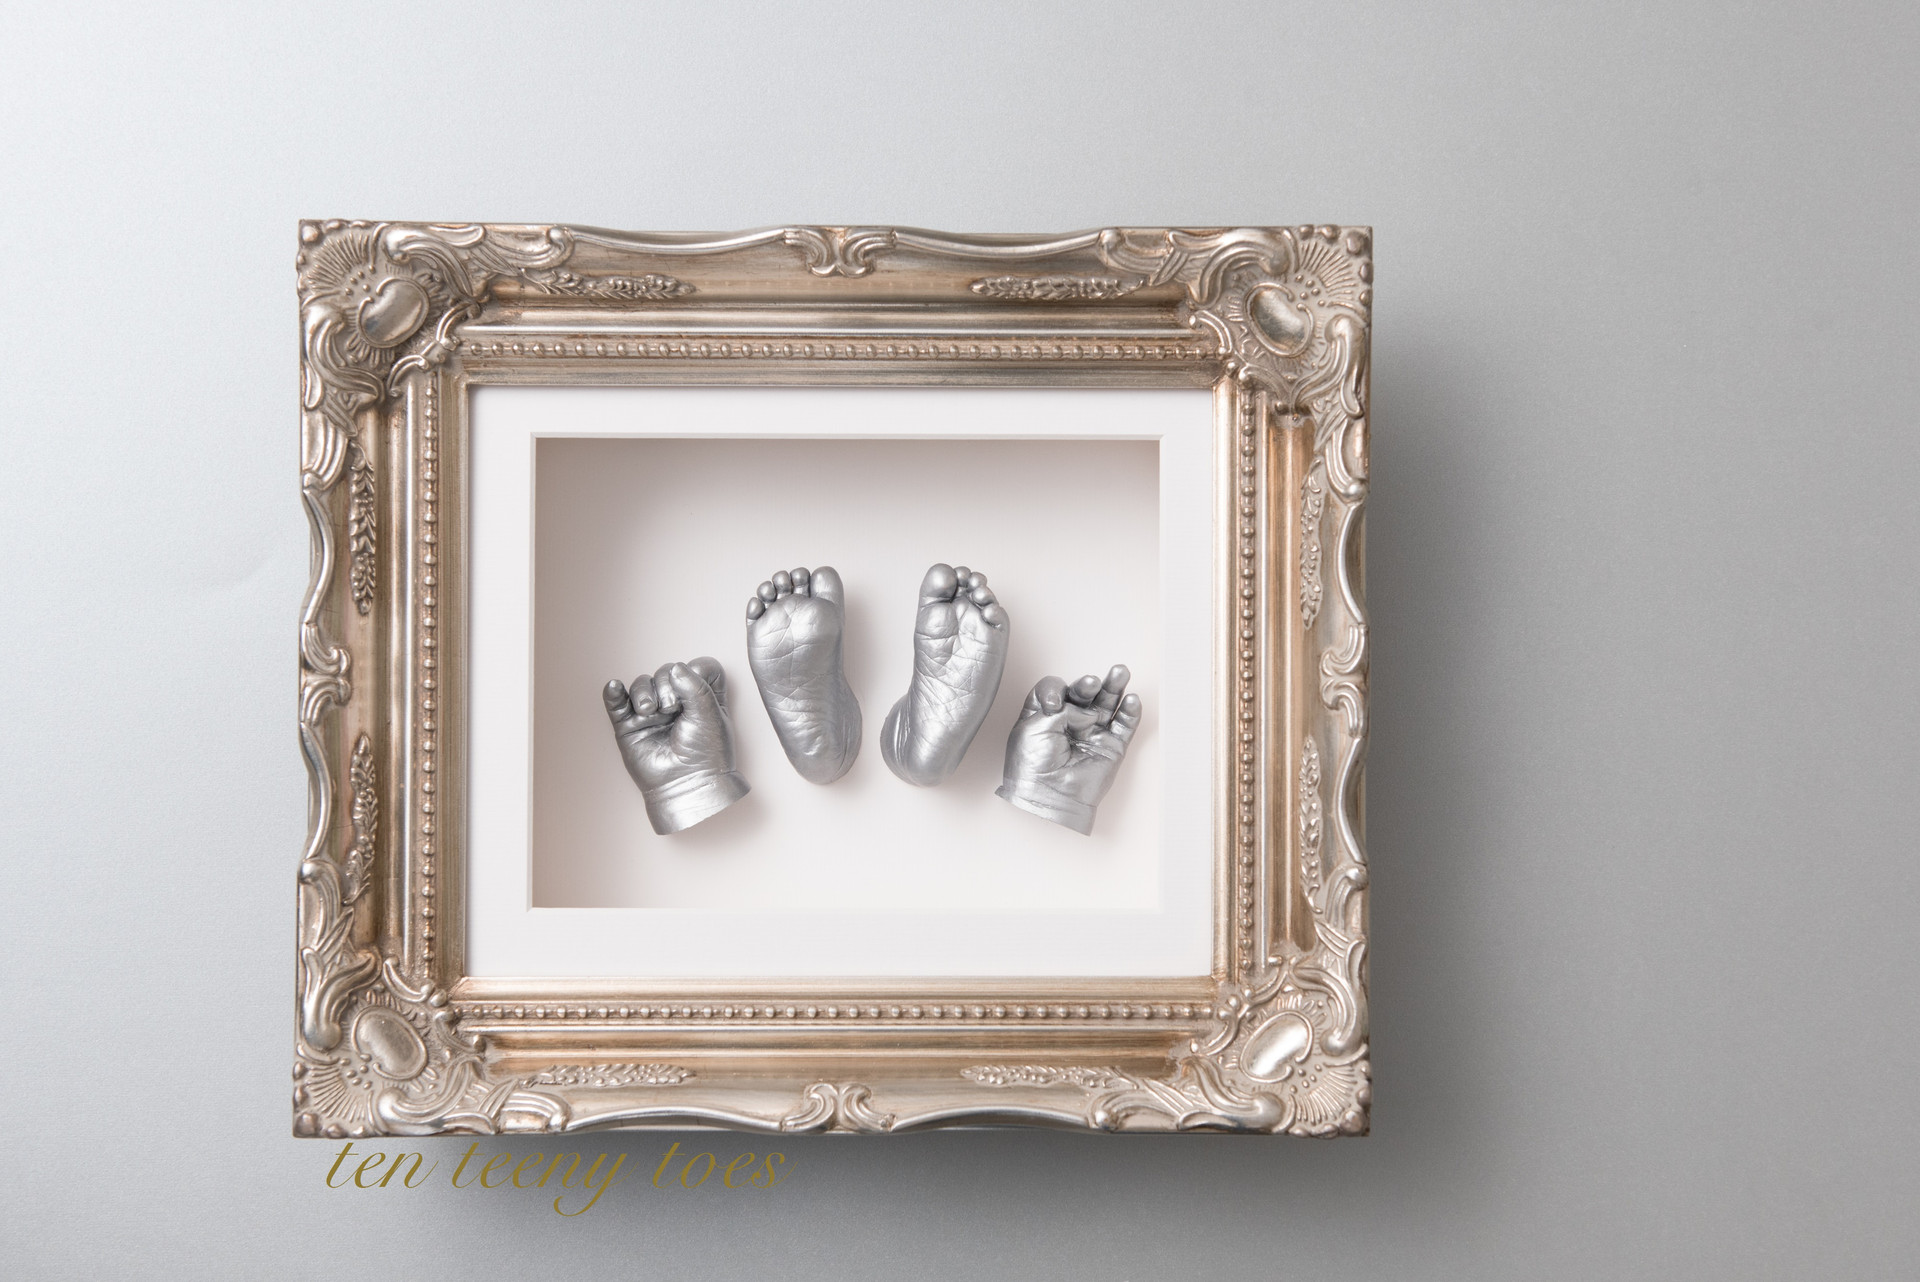 Four newborn casts in a platinum vintage frame.